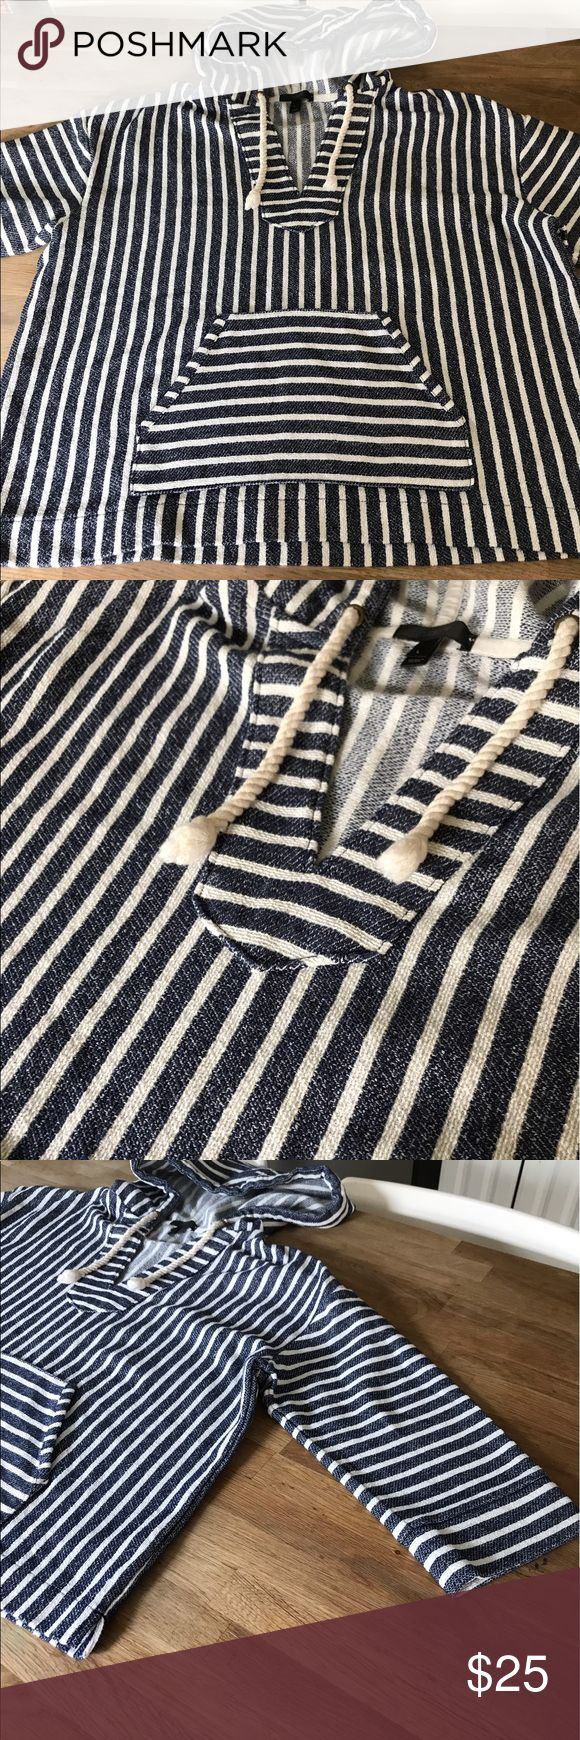 J. Crew Hoodie women's large Adorable J crew nautical vibe hoodie. Purchases on Psh and didn't fit my daughter. Brand new never worn. Cotton/polyester blend. So adorable and perfect for those summer nights. Size large J. Crew Tops Sweatshirts & Hoodies